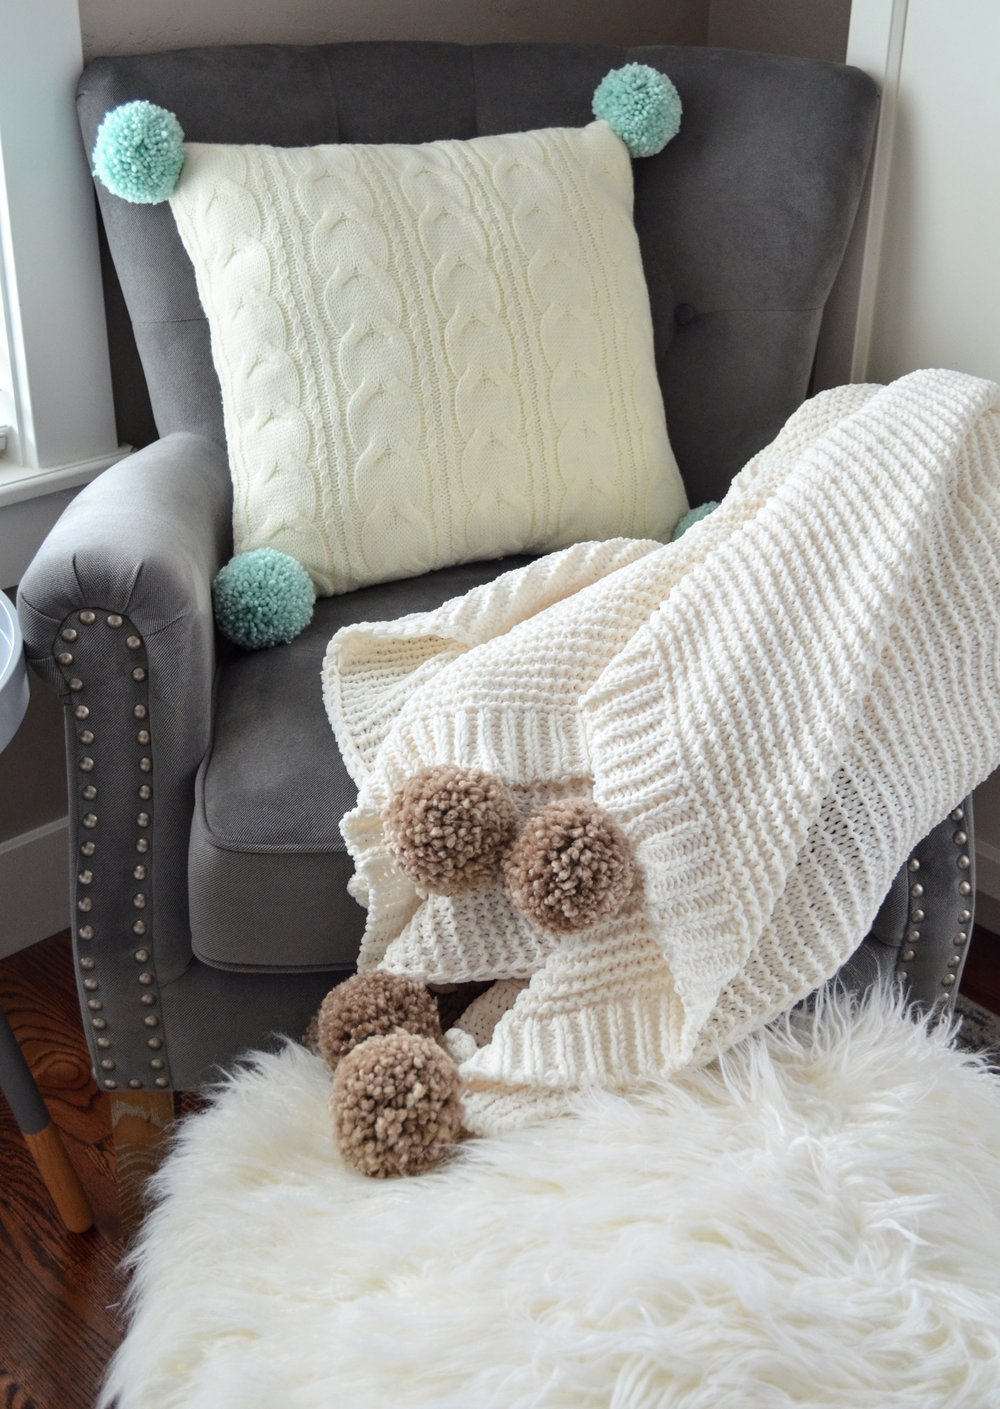 cozy up your home adding pom poms and tassels to blankets and